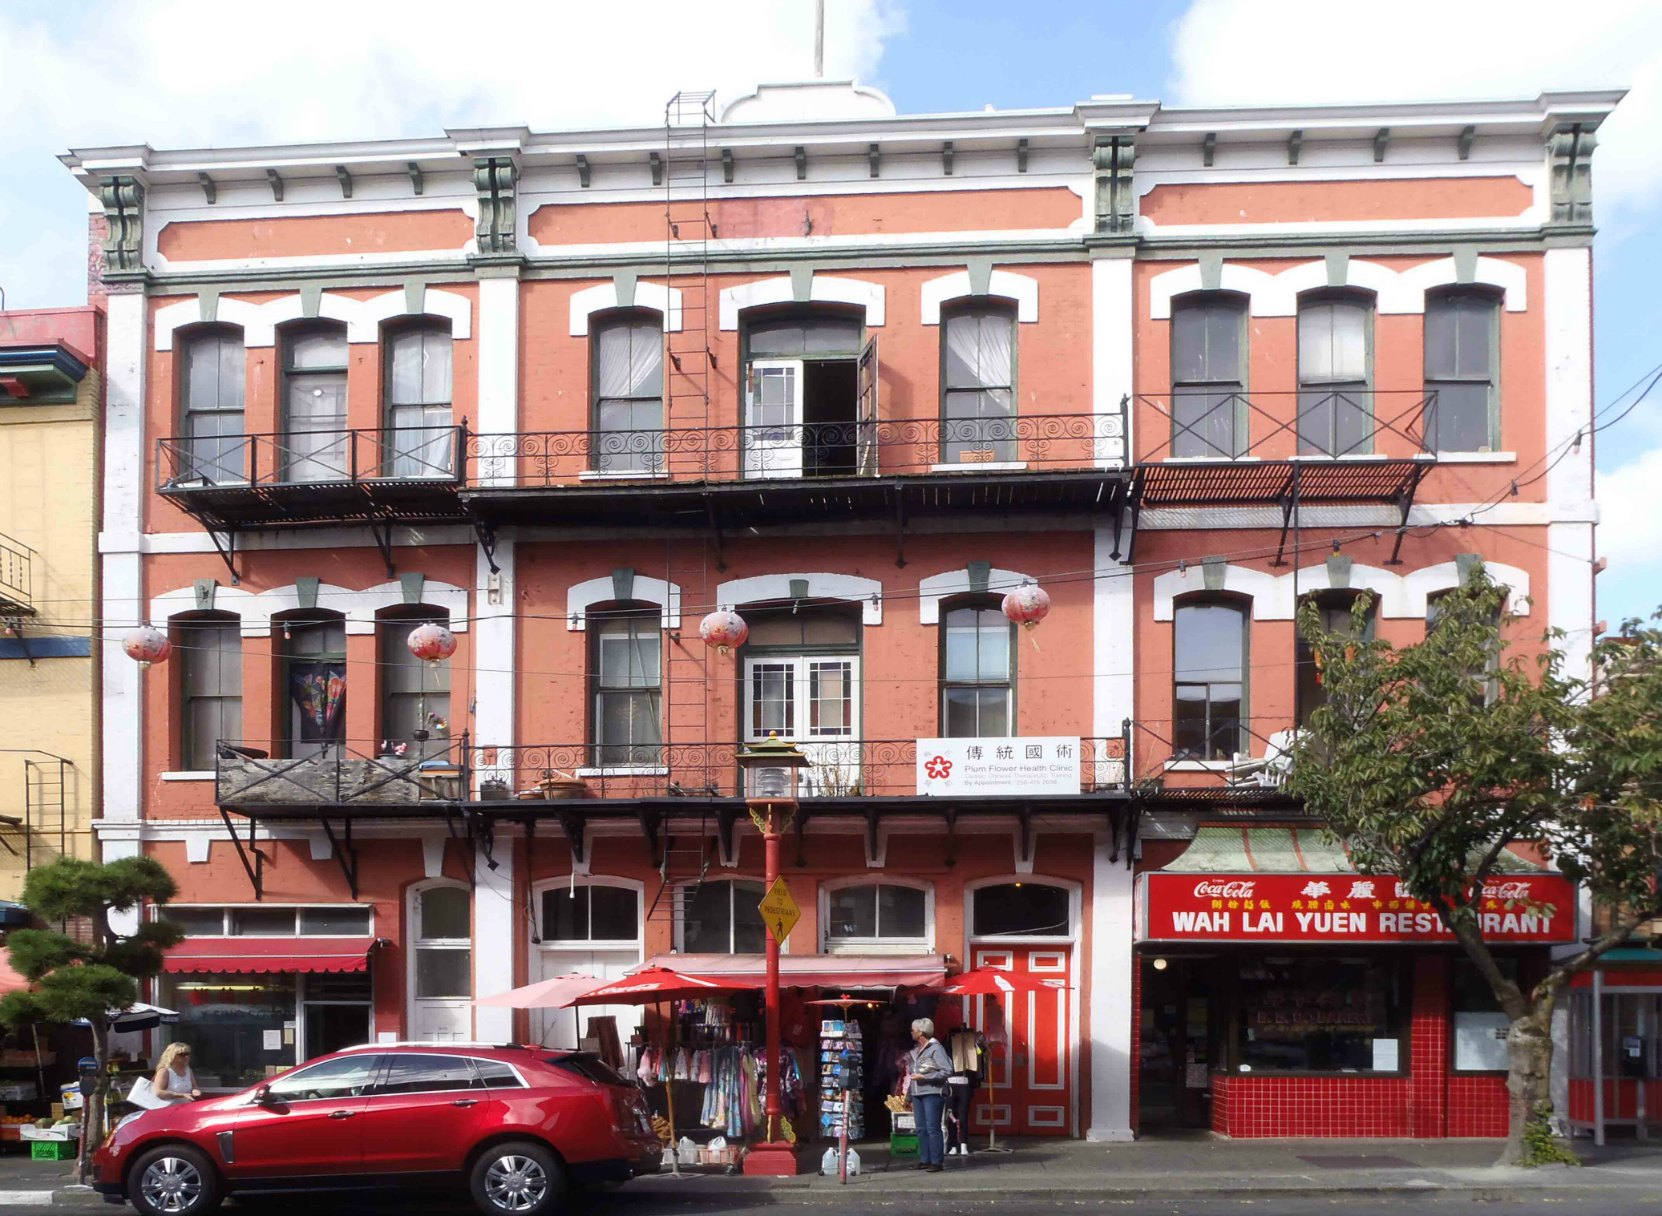 Chinese Consolidated Benevolent Society building, designed by John Teague in 1885